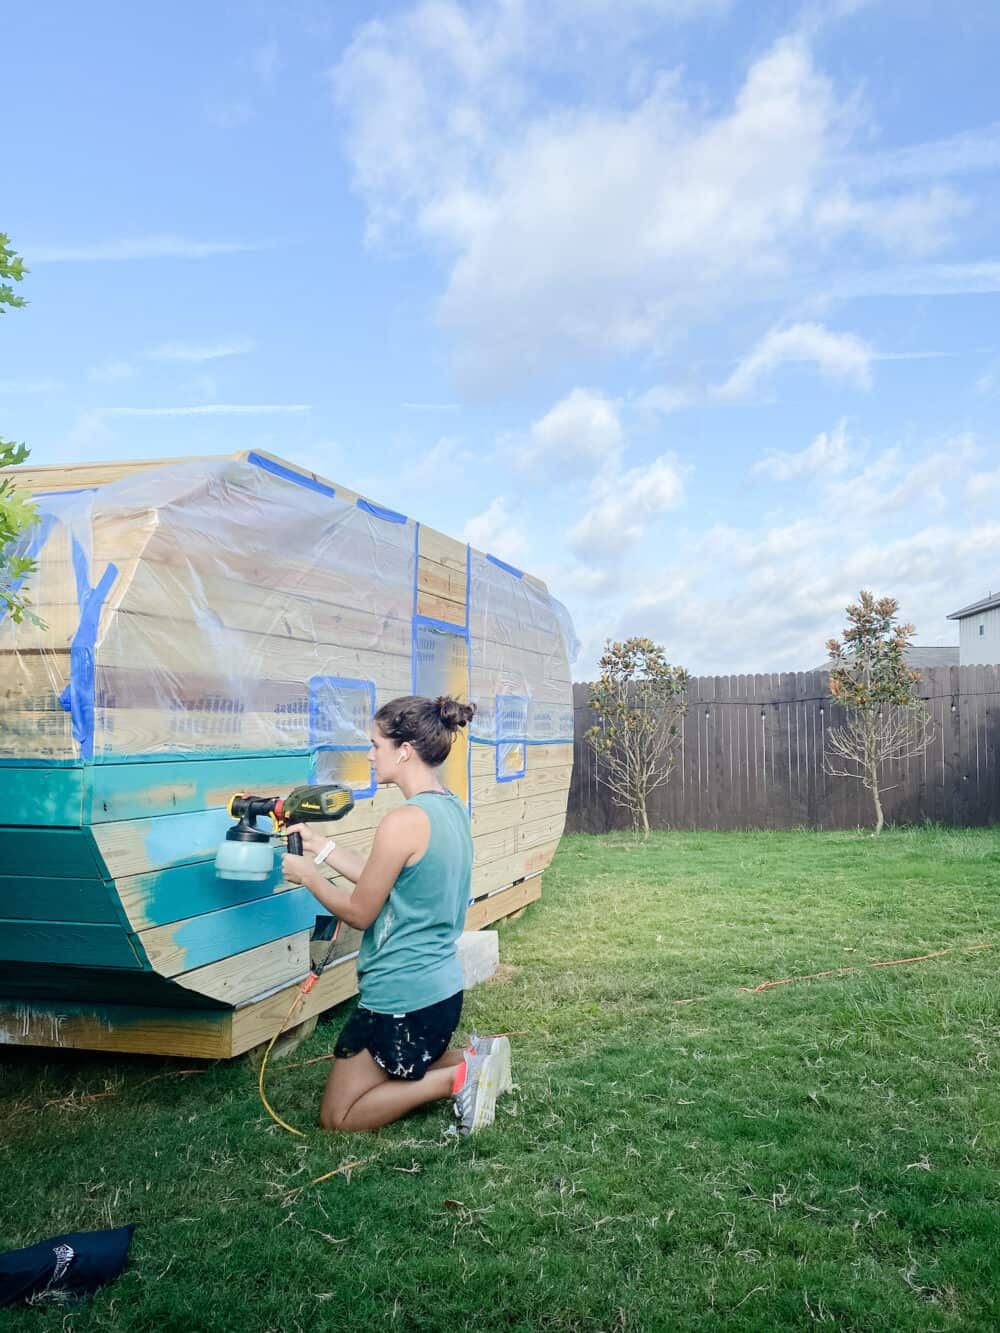 Woman painting a playhouse with a Wagner paint sprayer